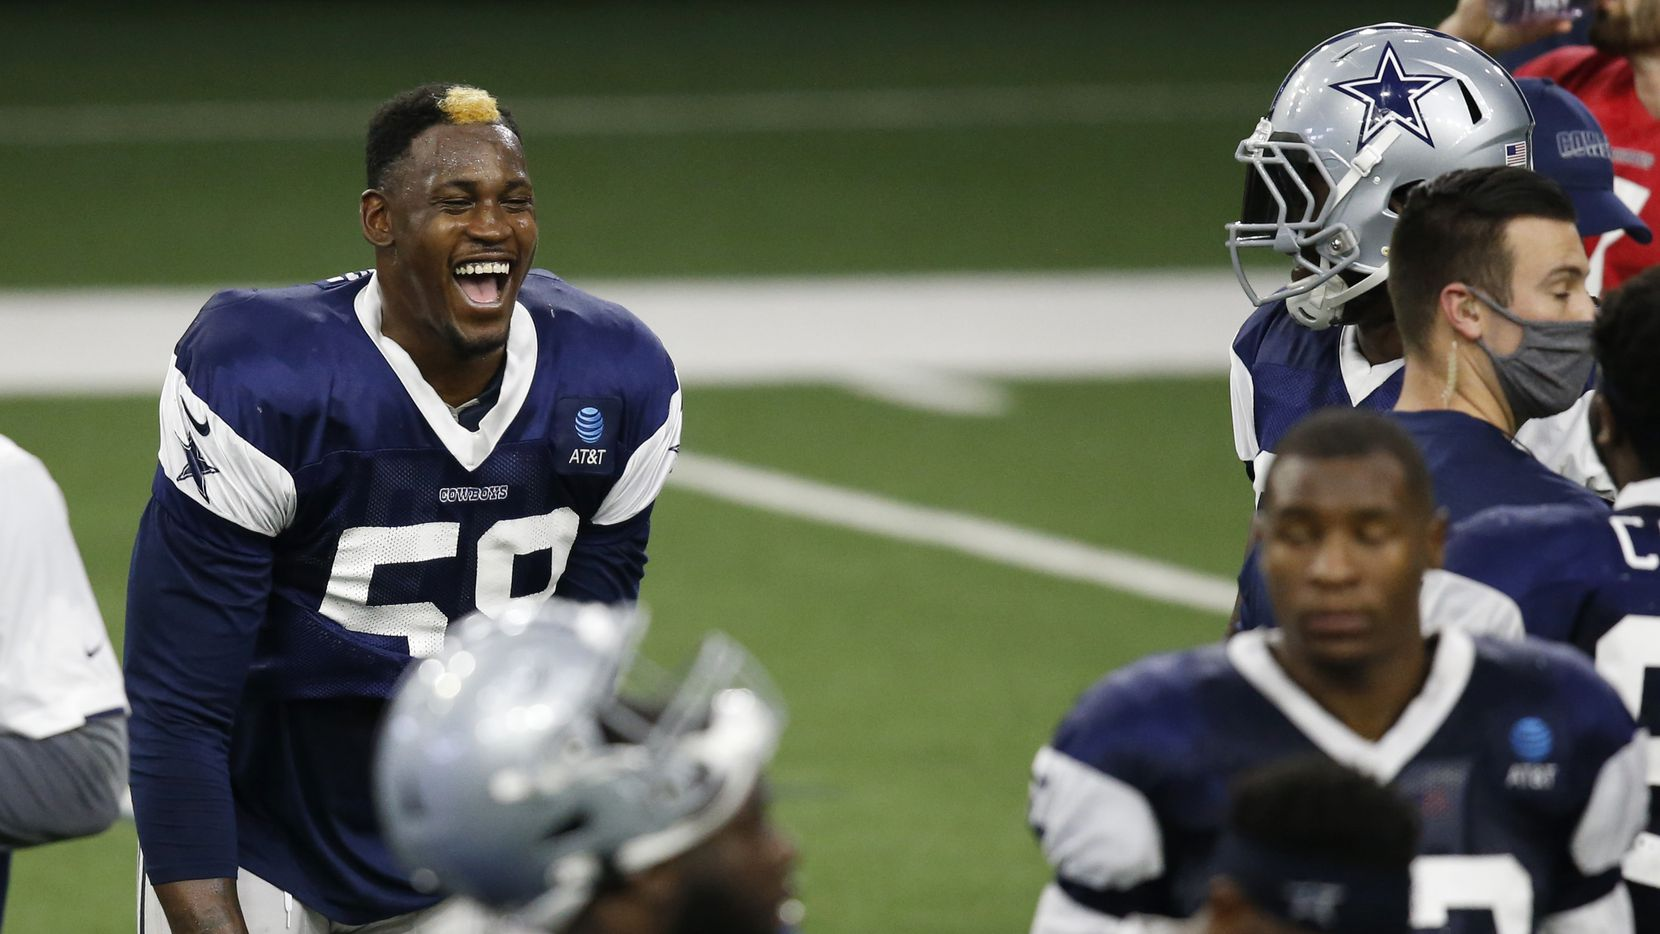 Dallas Cowboys defensive end Aldon Smith (58) laughs as he talks with Dallas Cowboys defensive end DeMarcus Lawrence (90) during a break in practice during training camp at the Dallas Cowboys headquarters at The Star in Frisco, Texas on Monday, August 31, 2020.